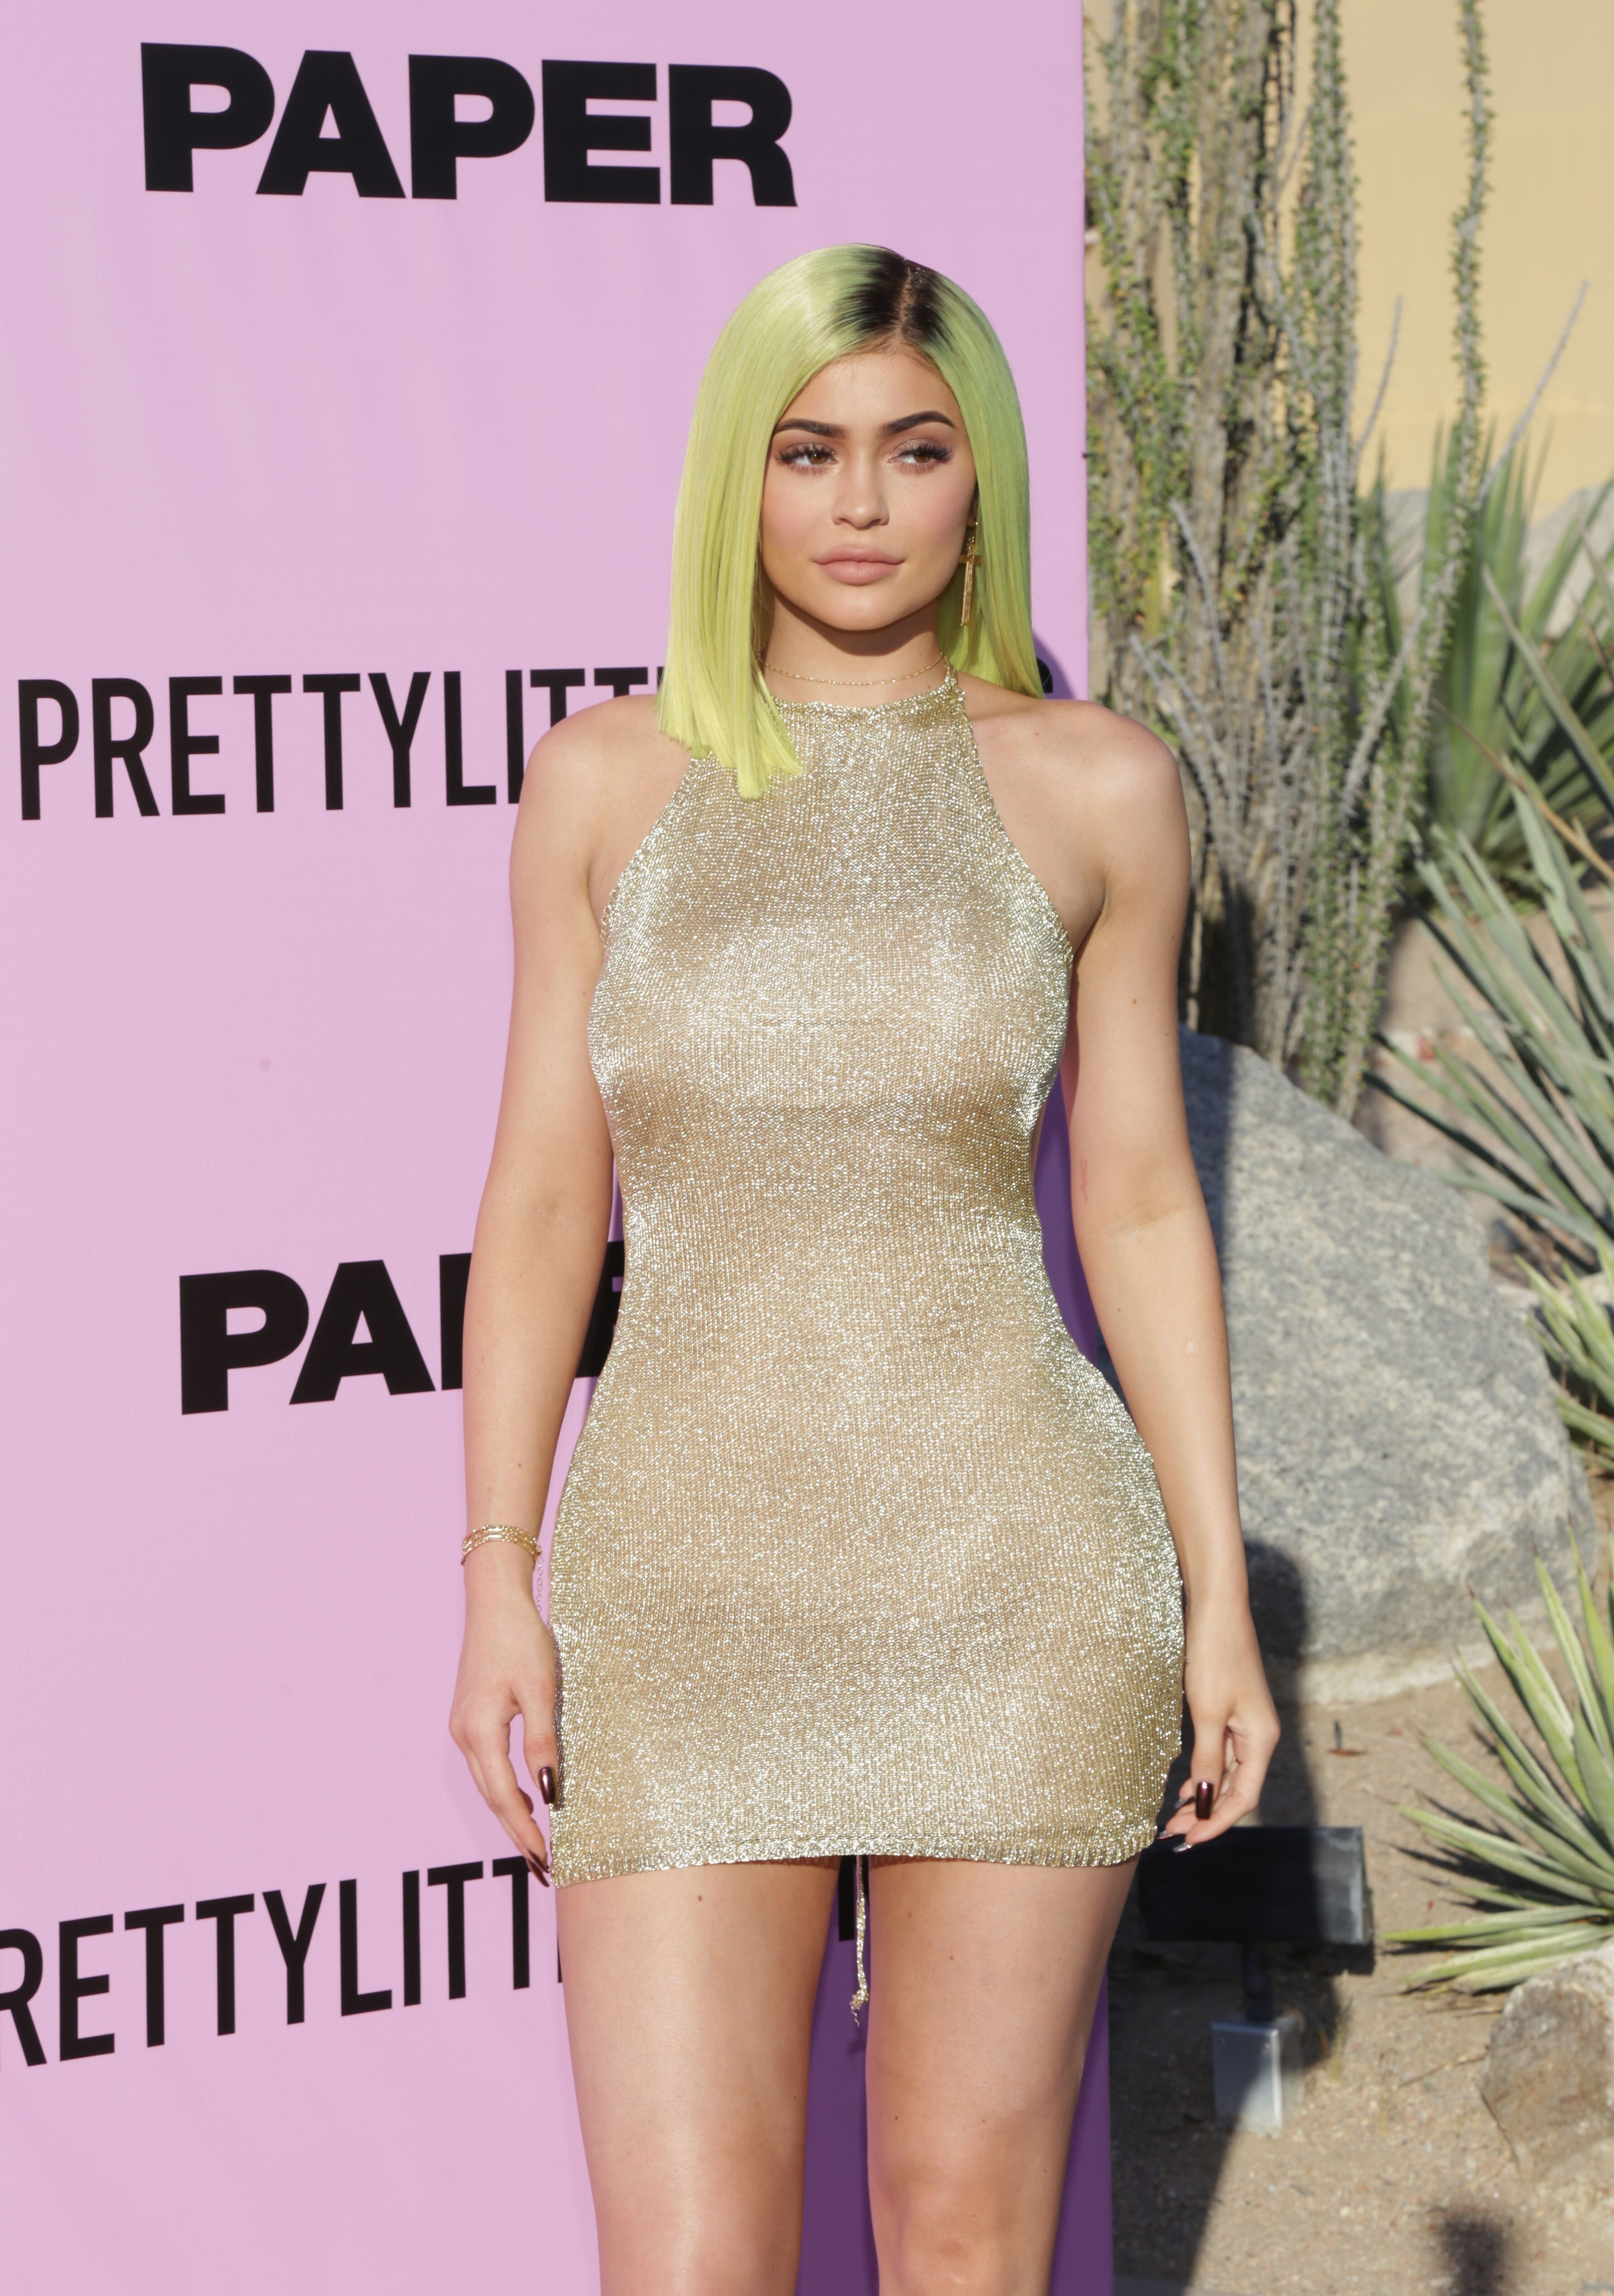 Kylie Jenner attends the PrettyLittleThing x Paper Magazine - The Pretty Little Playground on April 14, 2017 | Photo: Getty Images